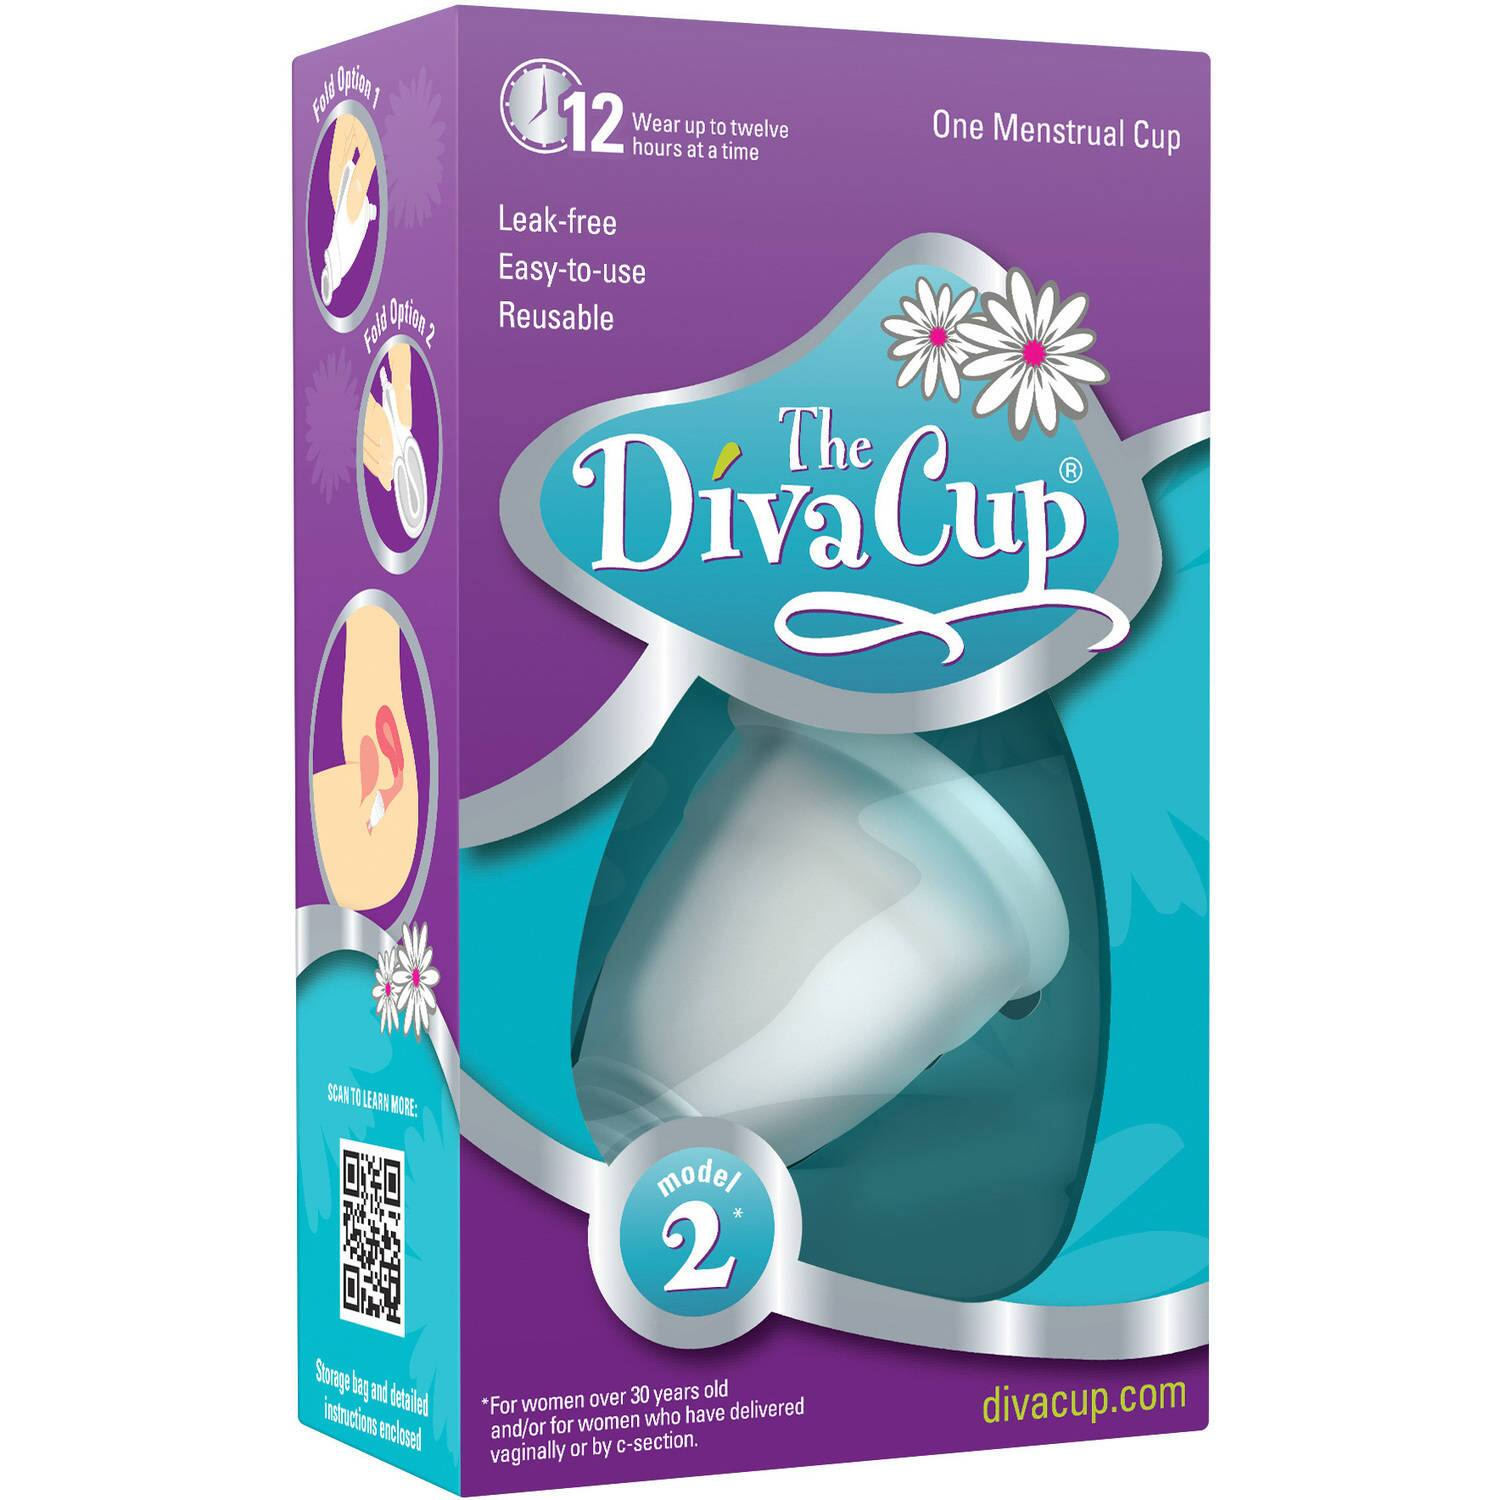 Diva Cup, Model 2, $12.94 Free Shipping - Sold by Harrisburg Store through Wal-Mart